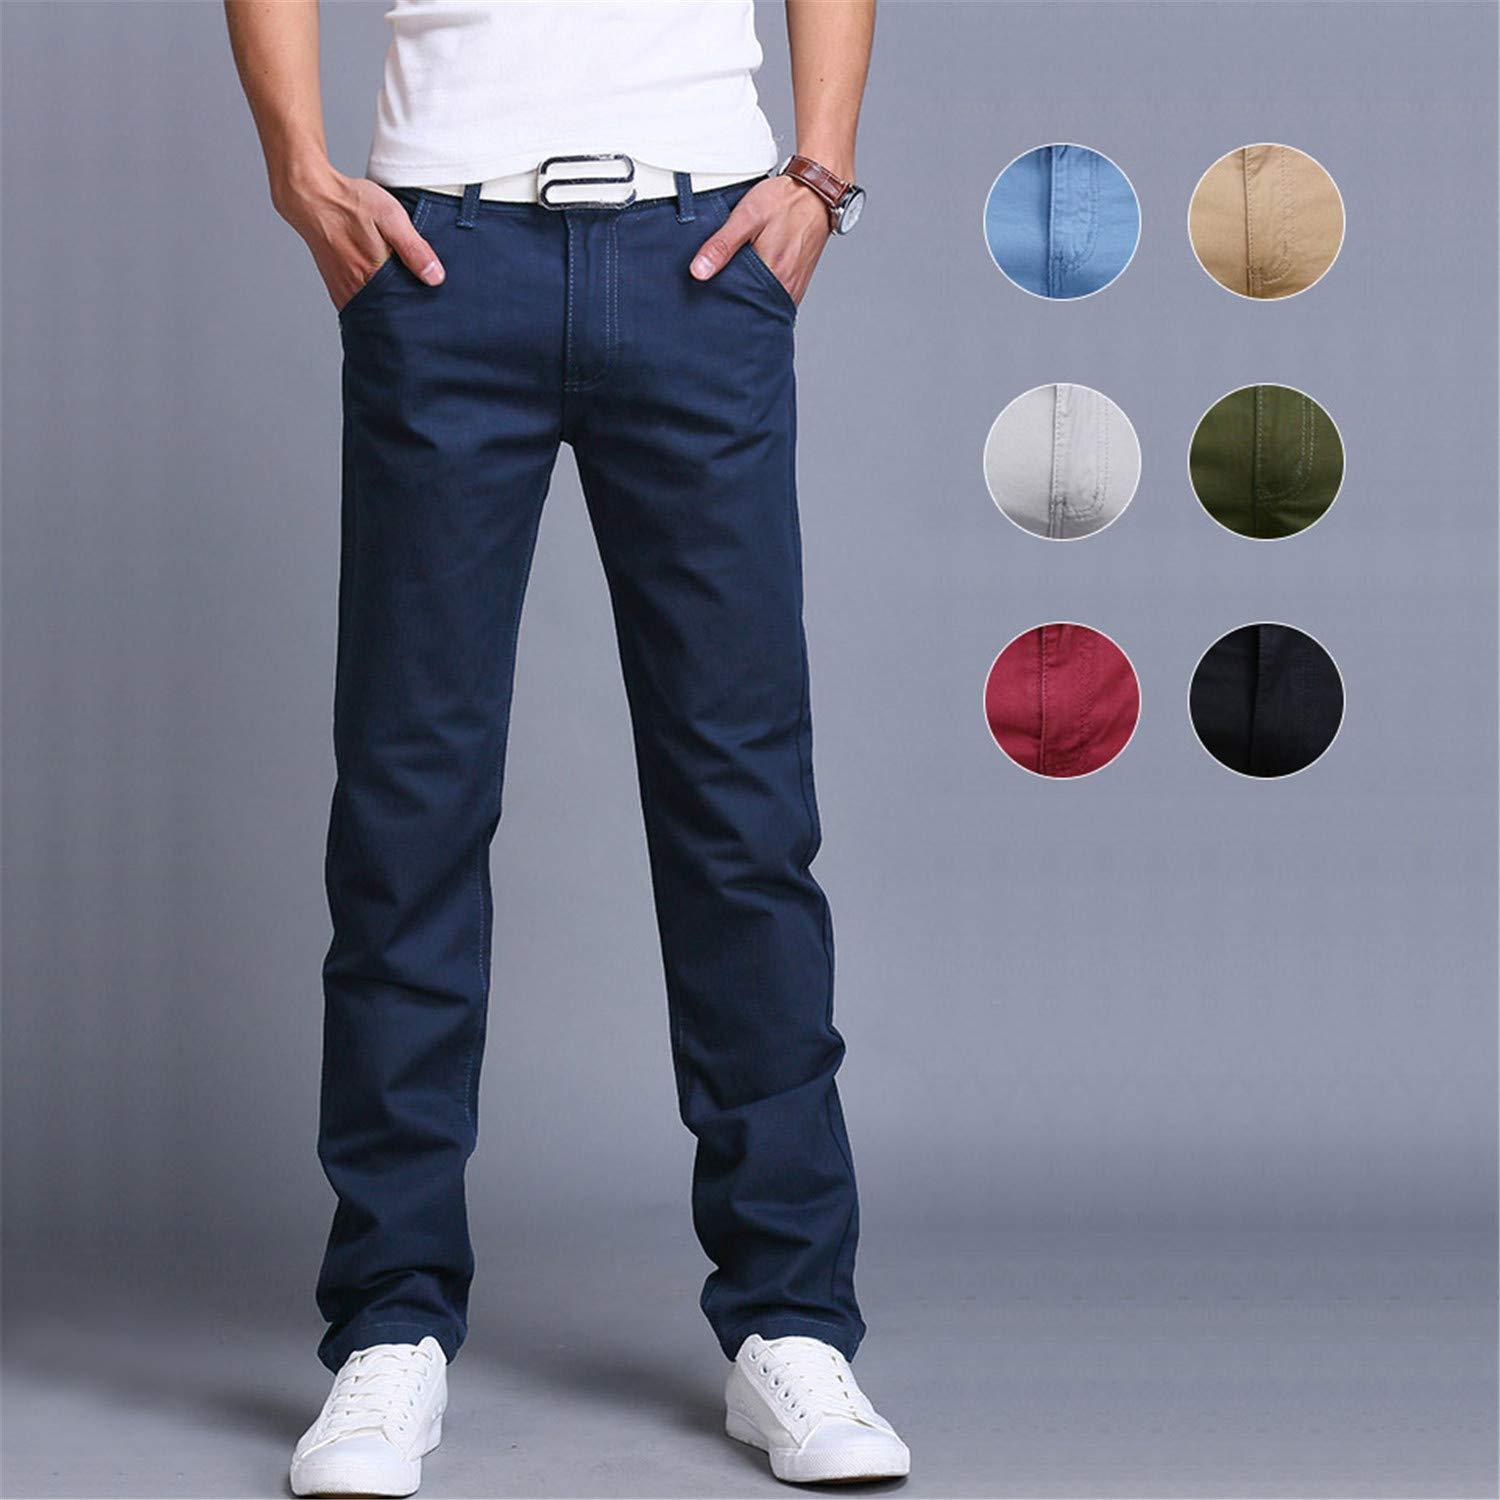 Eslove Fashion Men Business Casual Pants Slim Straight Trousers Spring Summer Long Pants